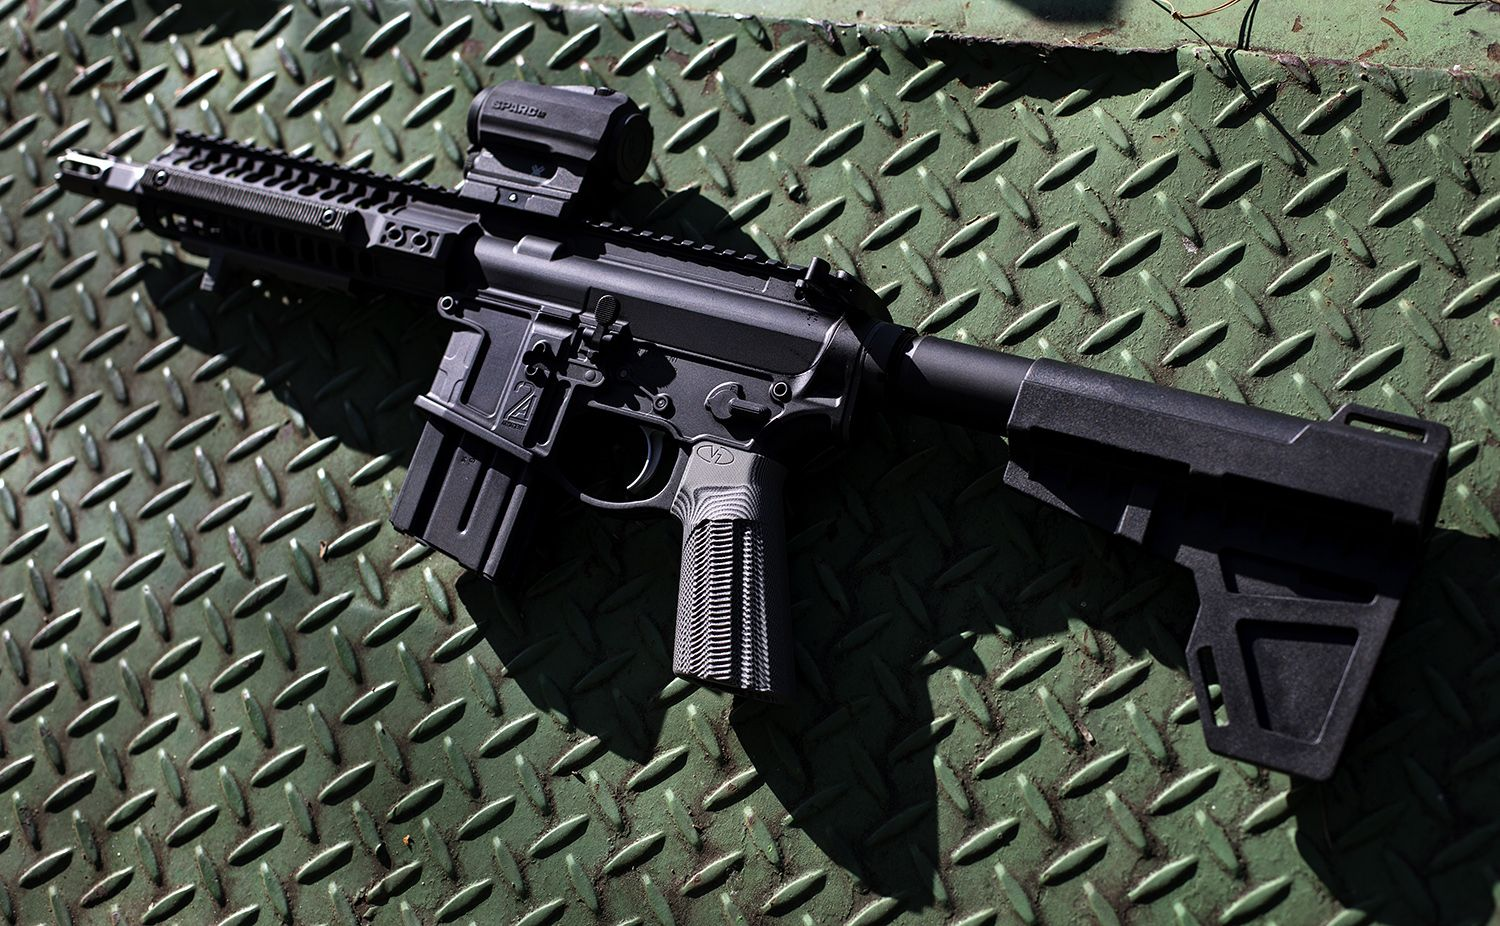 VZ Weapon Solutions AR-15, Alien texture in black gray on a